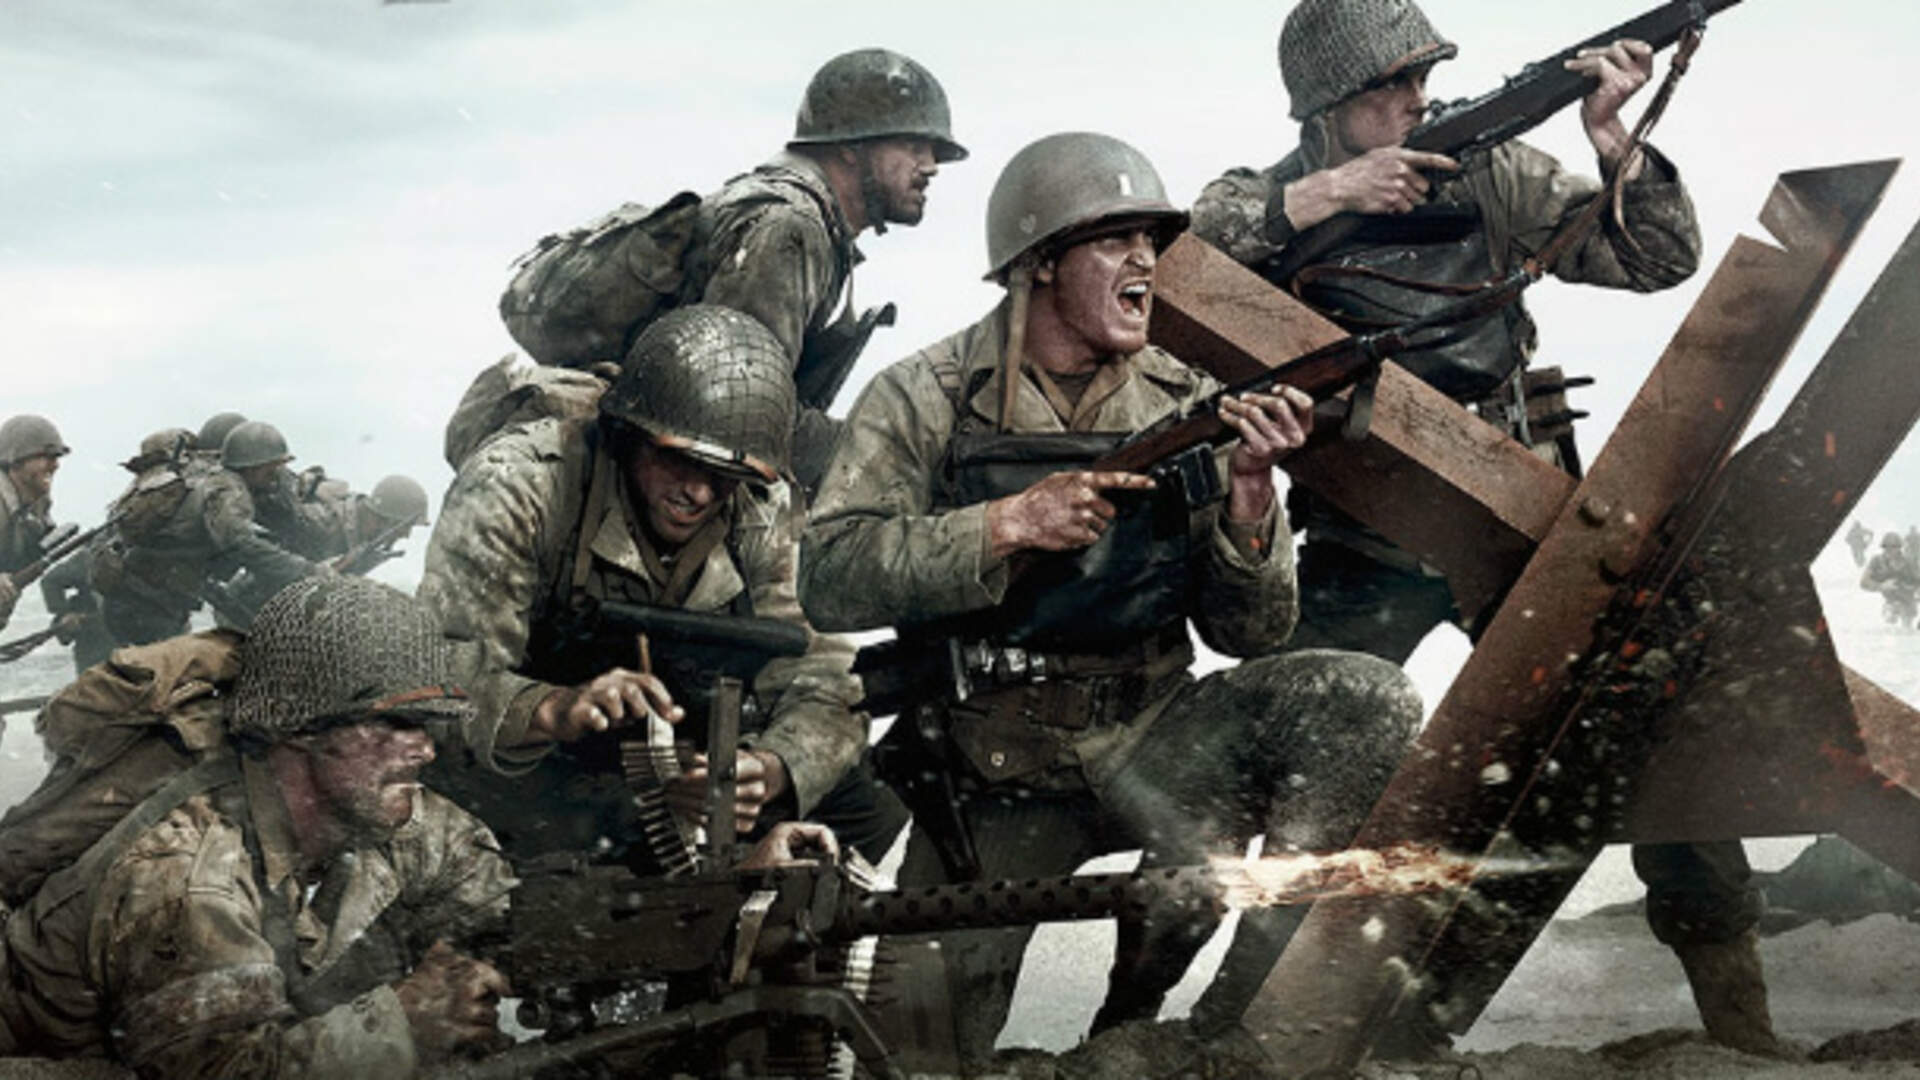 Call of Duty WW2 Gets Reviews That Remind Us of the Black Ops Days